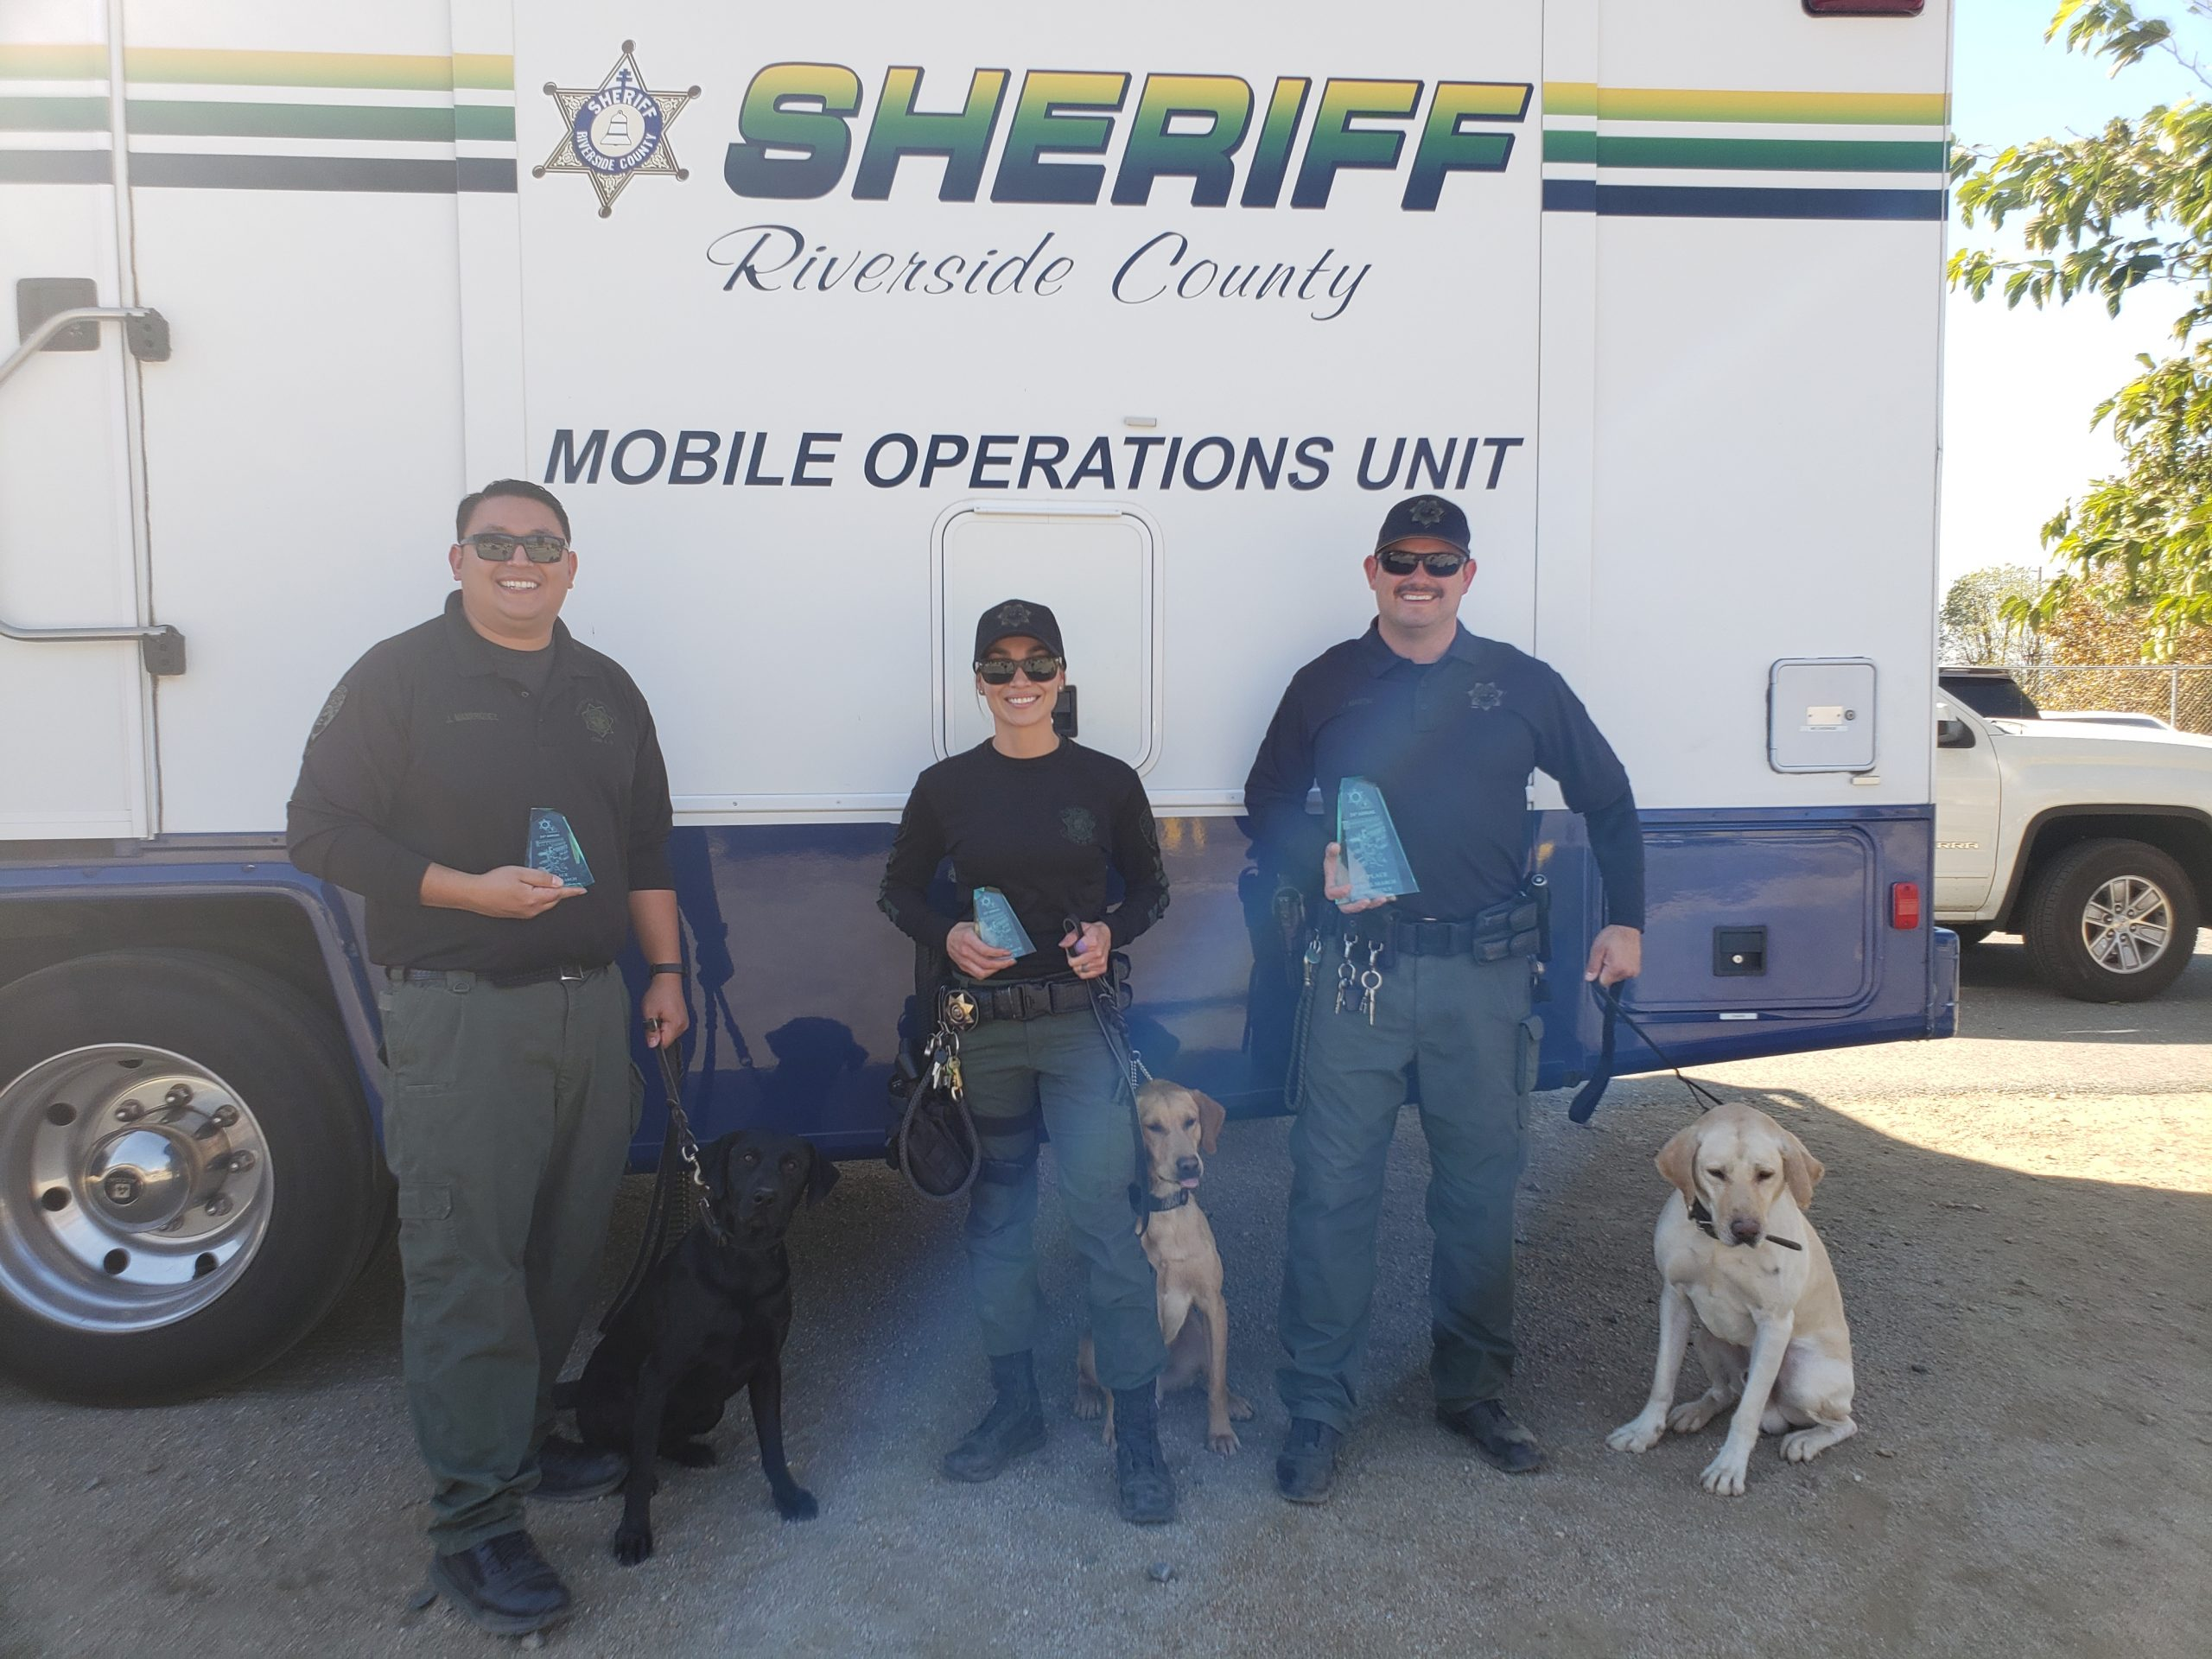 Three officers and their dogs stand in front of a Riverside County Sheriff mobile operations unit van.